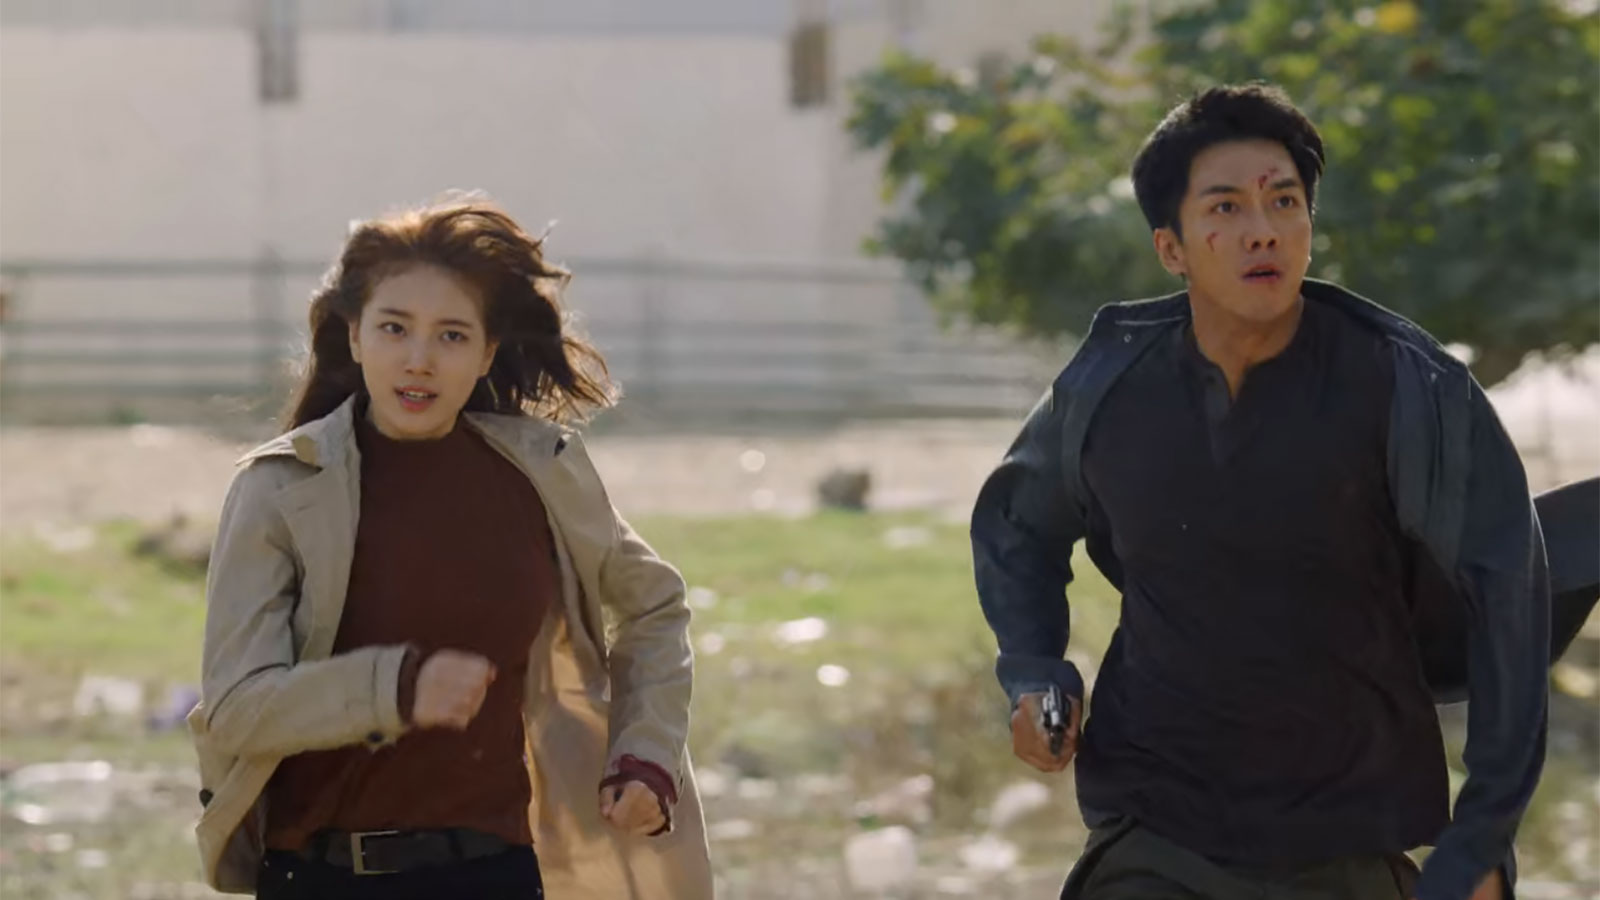 Good Ol' Review: Lee Seung-gi and Suzy's Chemistry Lead Vagabond's Thrilling Ride